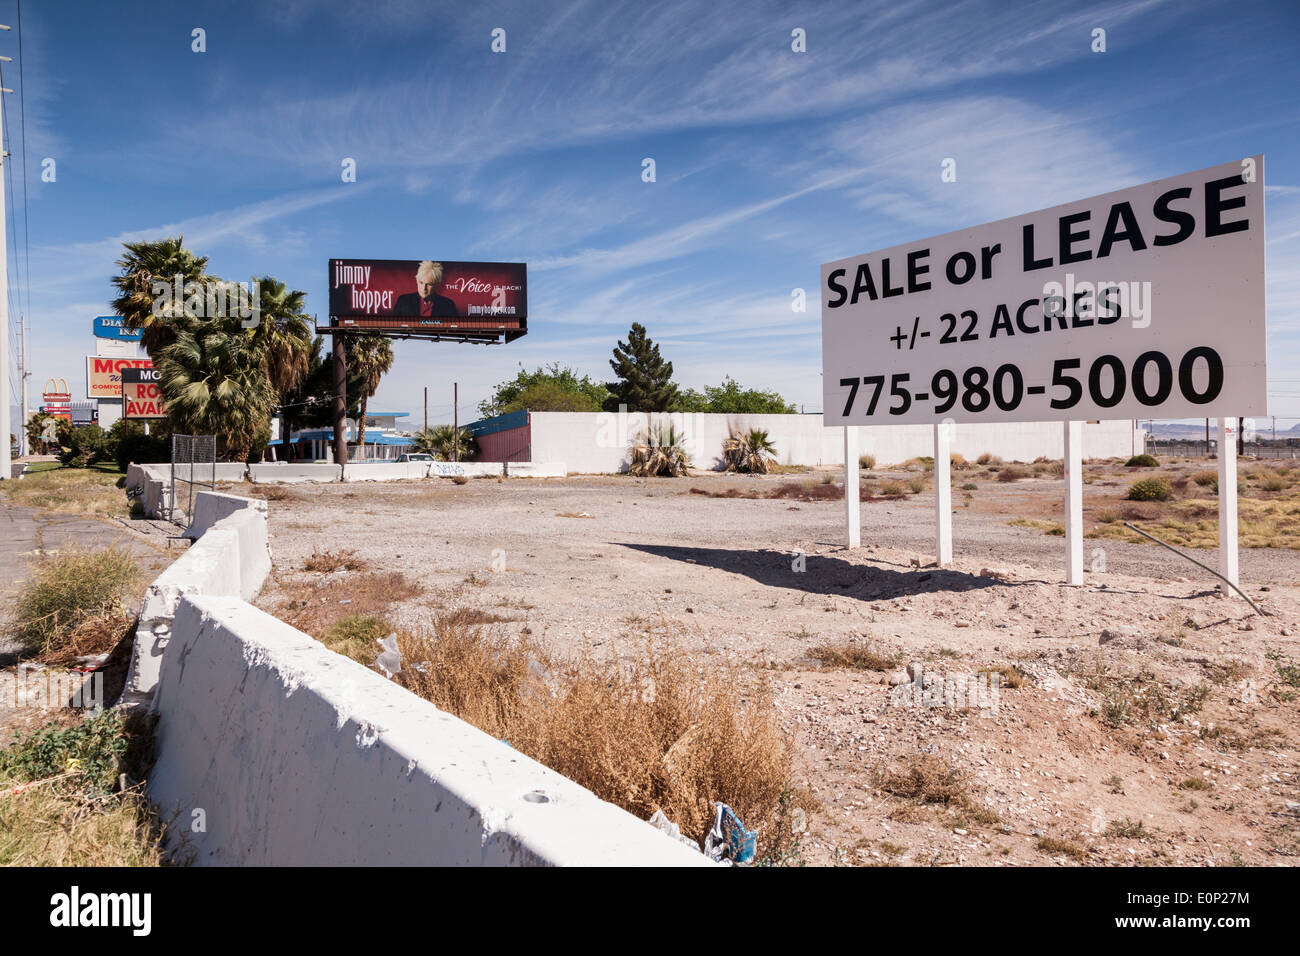 Vacant lot for sale at the end of The Strip in Las Vegas - Stock Image